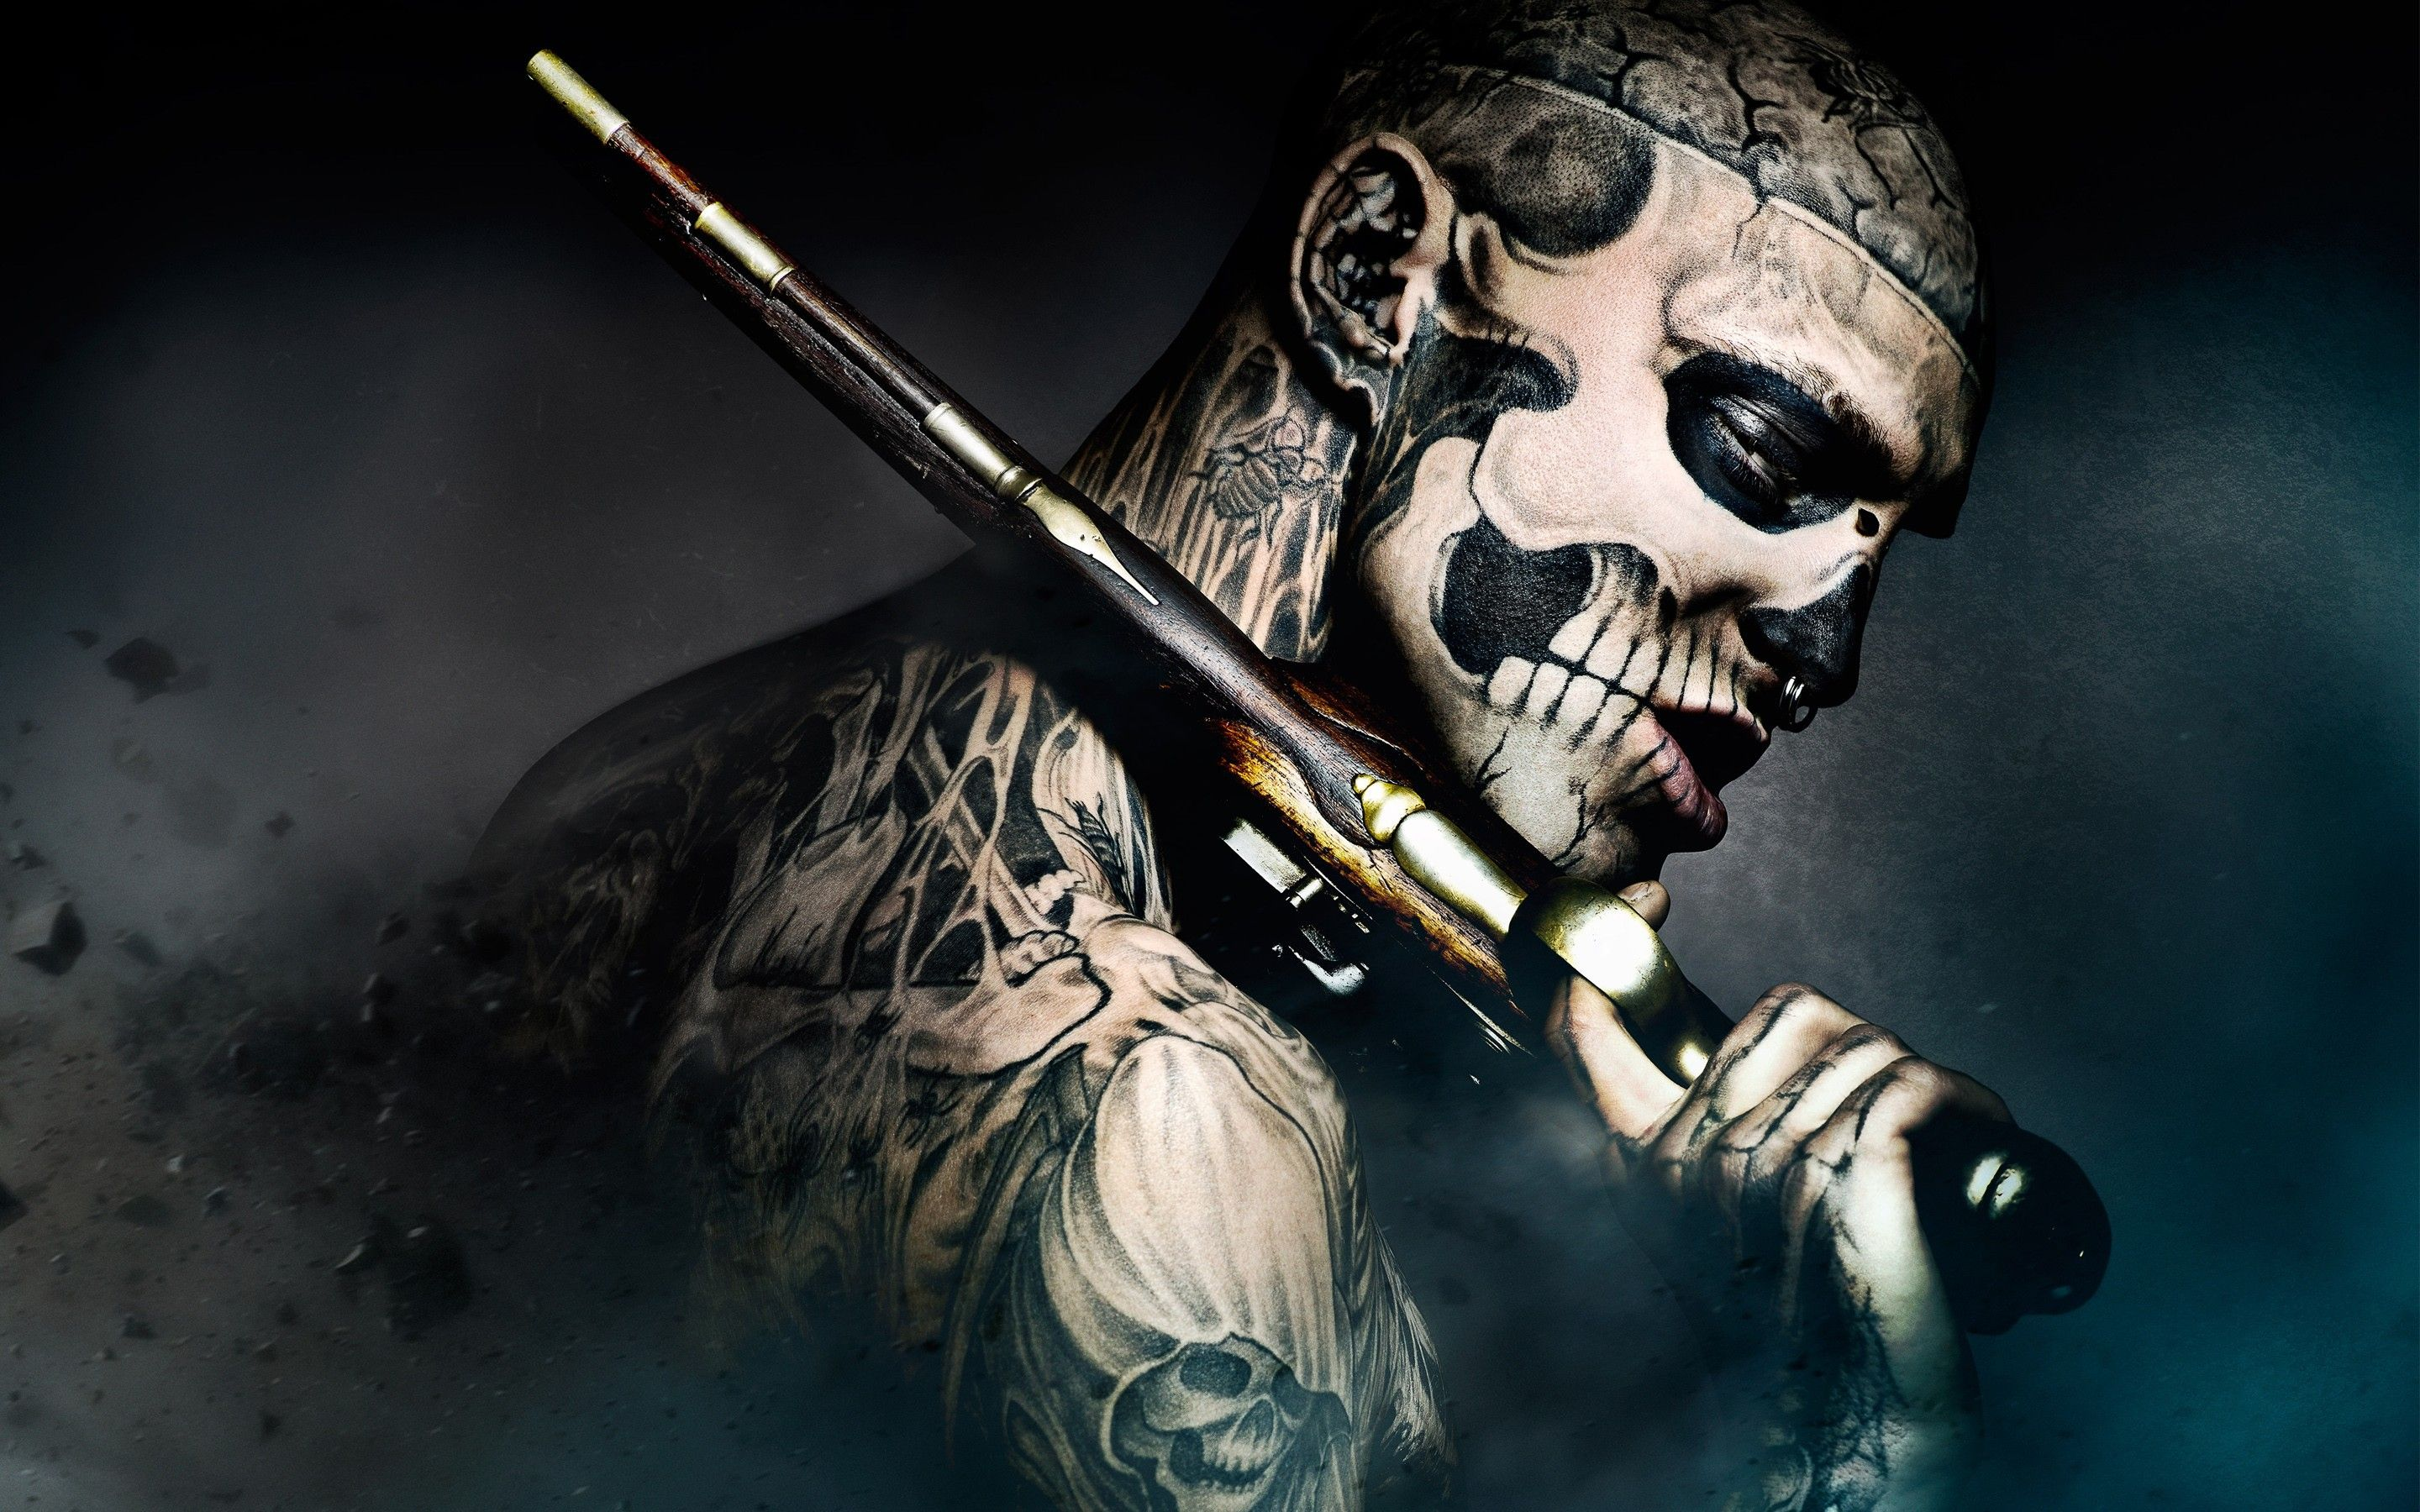 Hd wallpaper zombie - Ronin Wallpaper Wallpapers Pinterest Zombie Tattoos The Hd Wallpapers Pinterest Zombie Tattoos Wallpaper And Hd Wallpaper